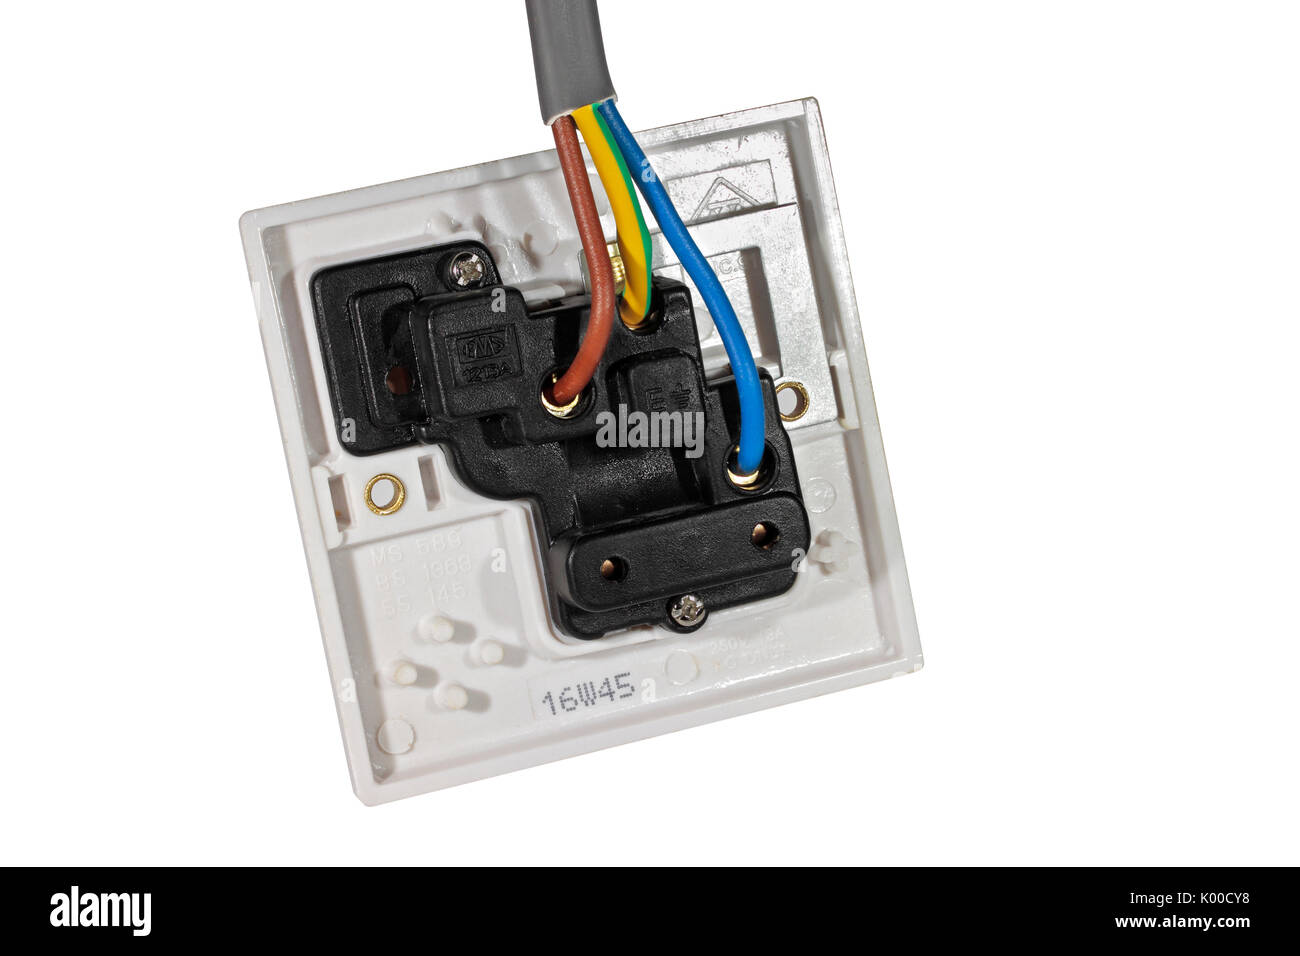 Wiring Electrical House Stockfotos & Wiring Electrical House Bilder ...